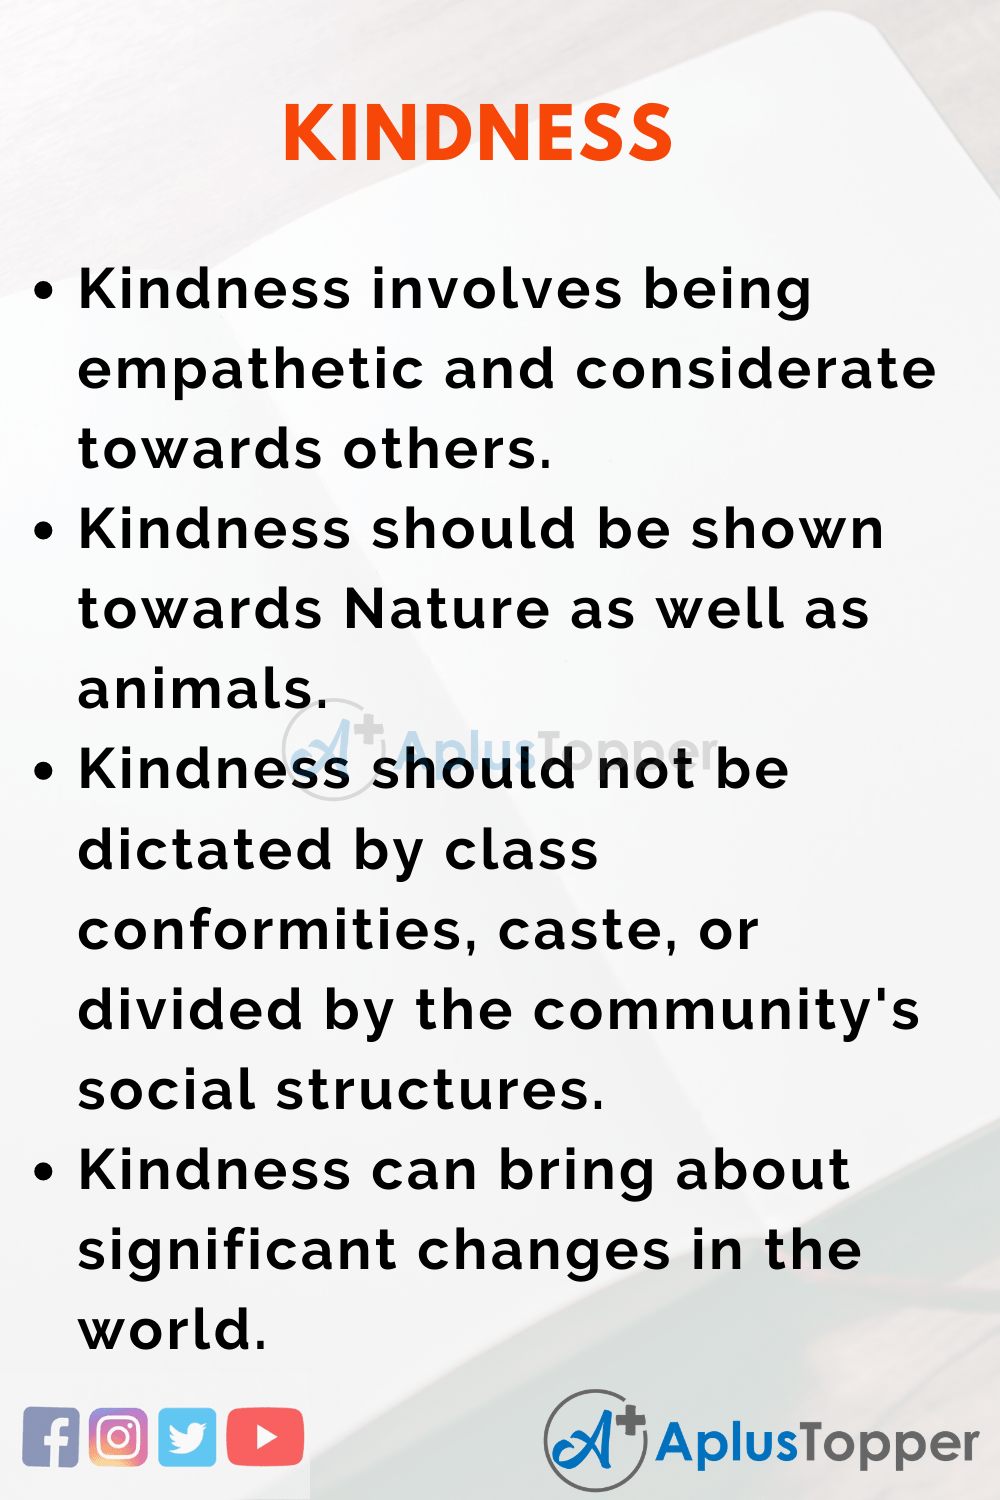 Essay about Kindness